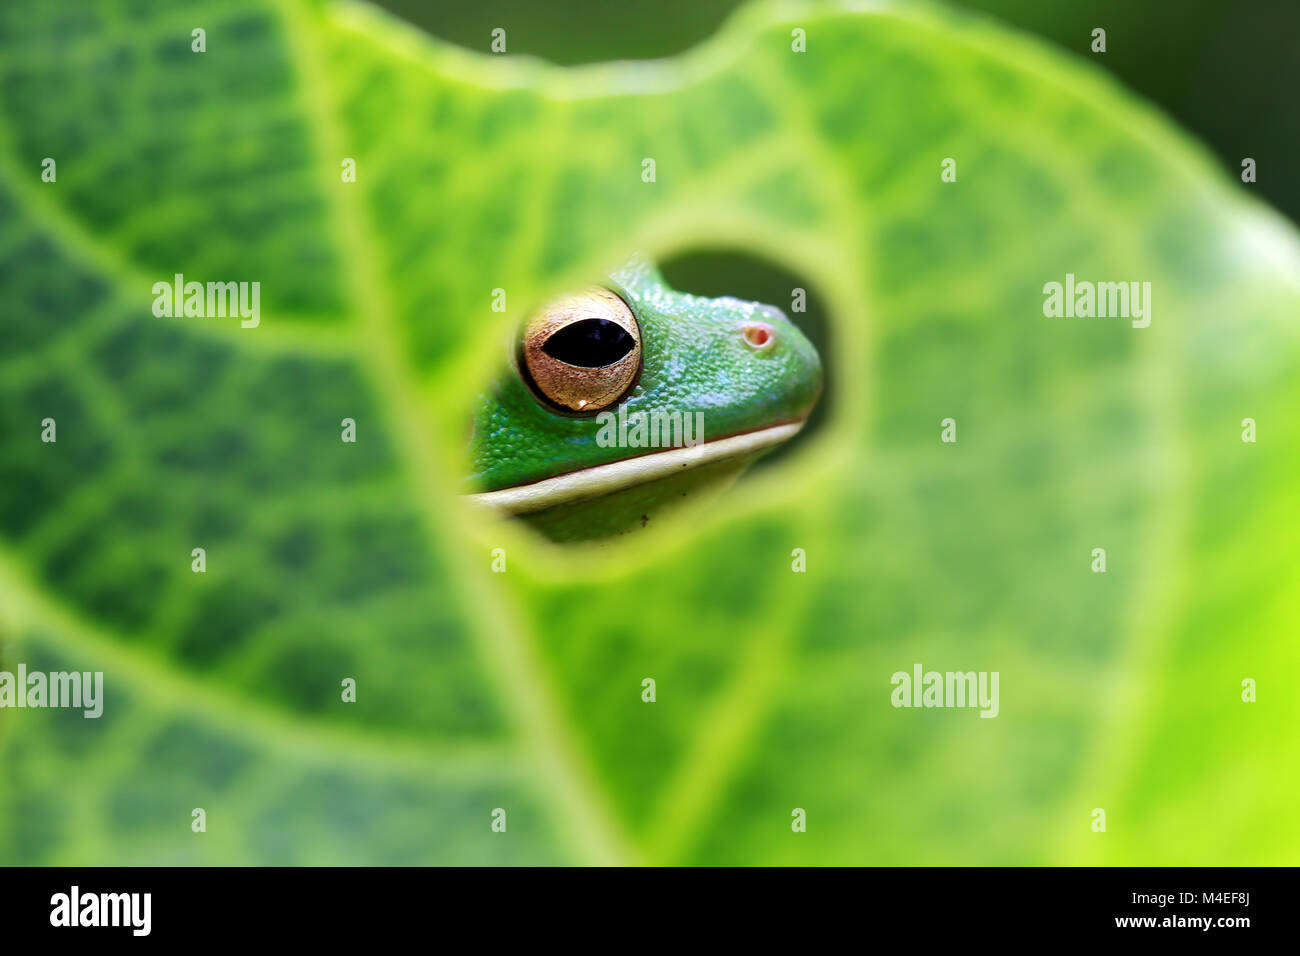 White lipped tree frog head seen through a hole in a leaf,Indonesia - Stock Image